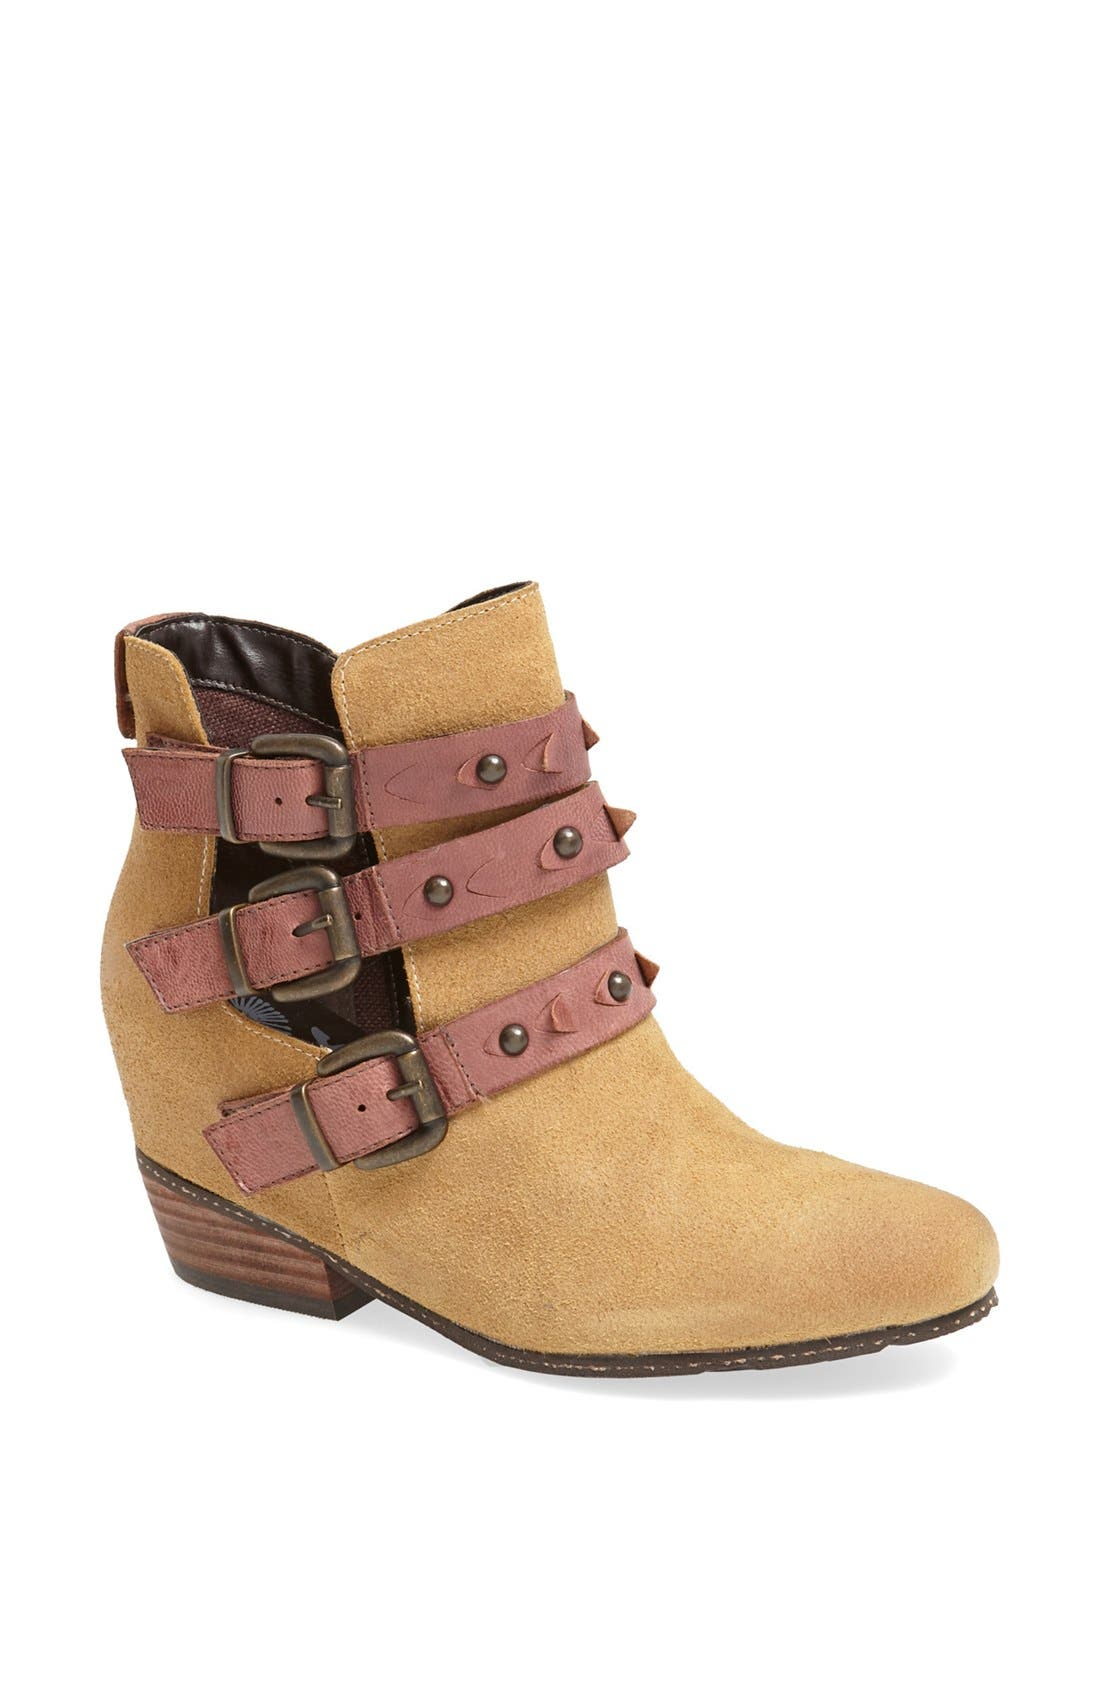 Main Image - OTBT 'Valley View' Bootie